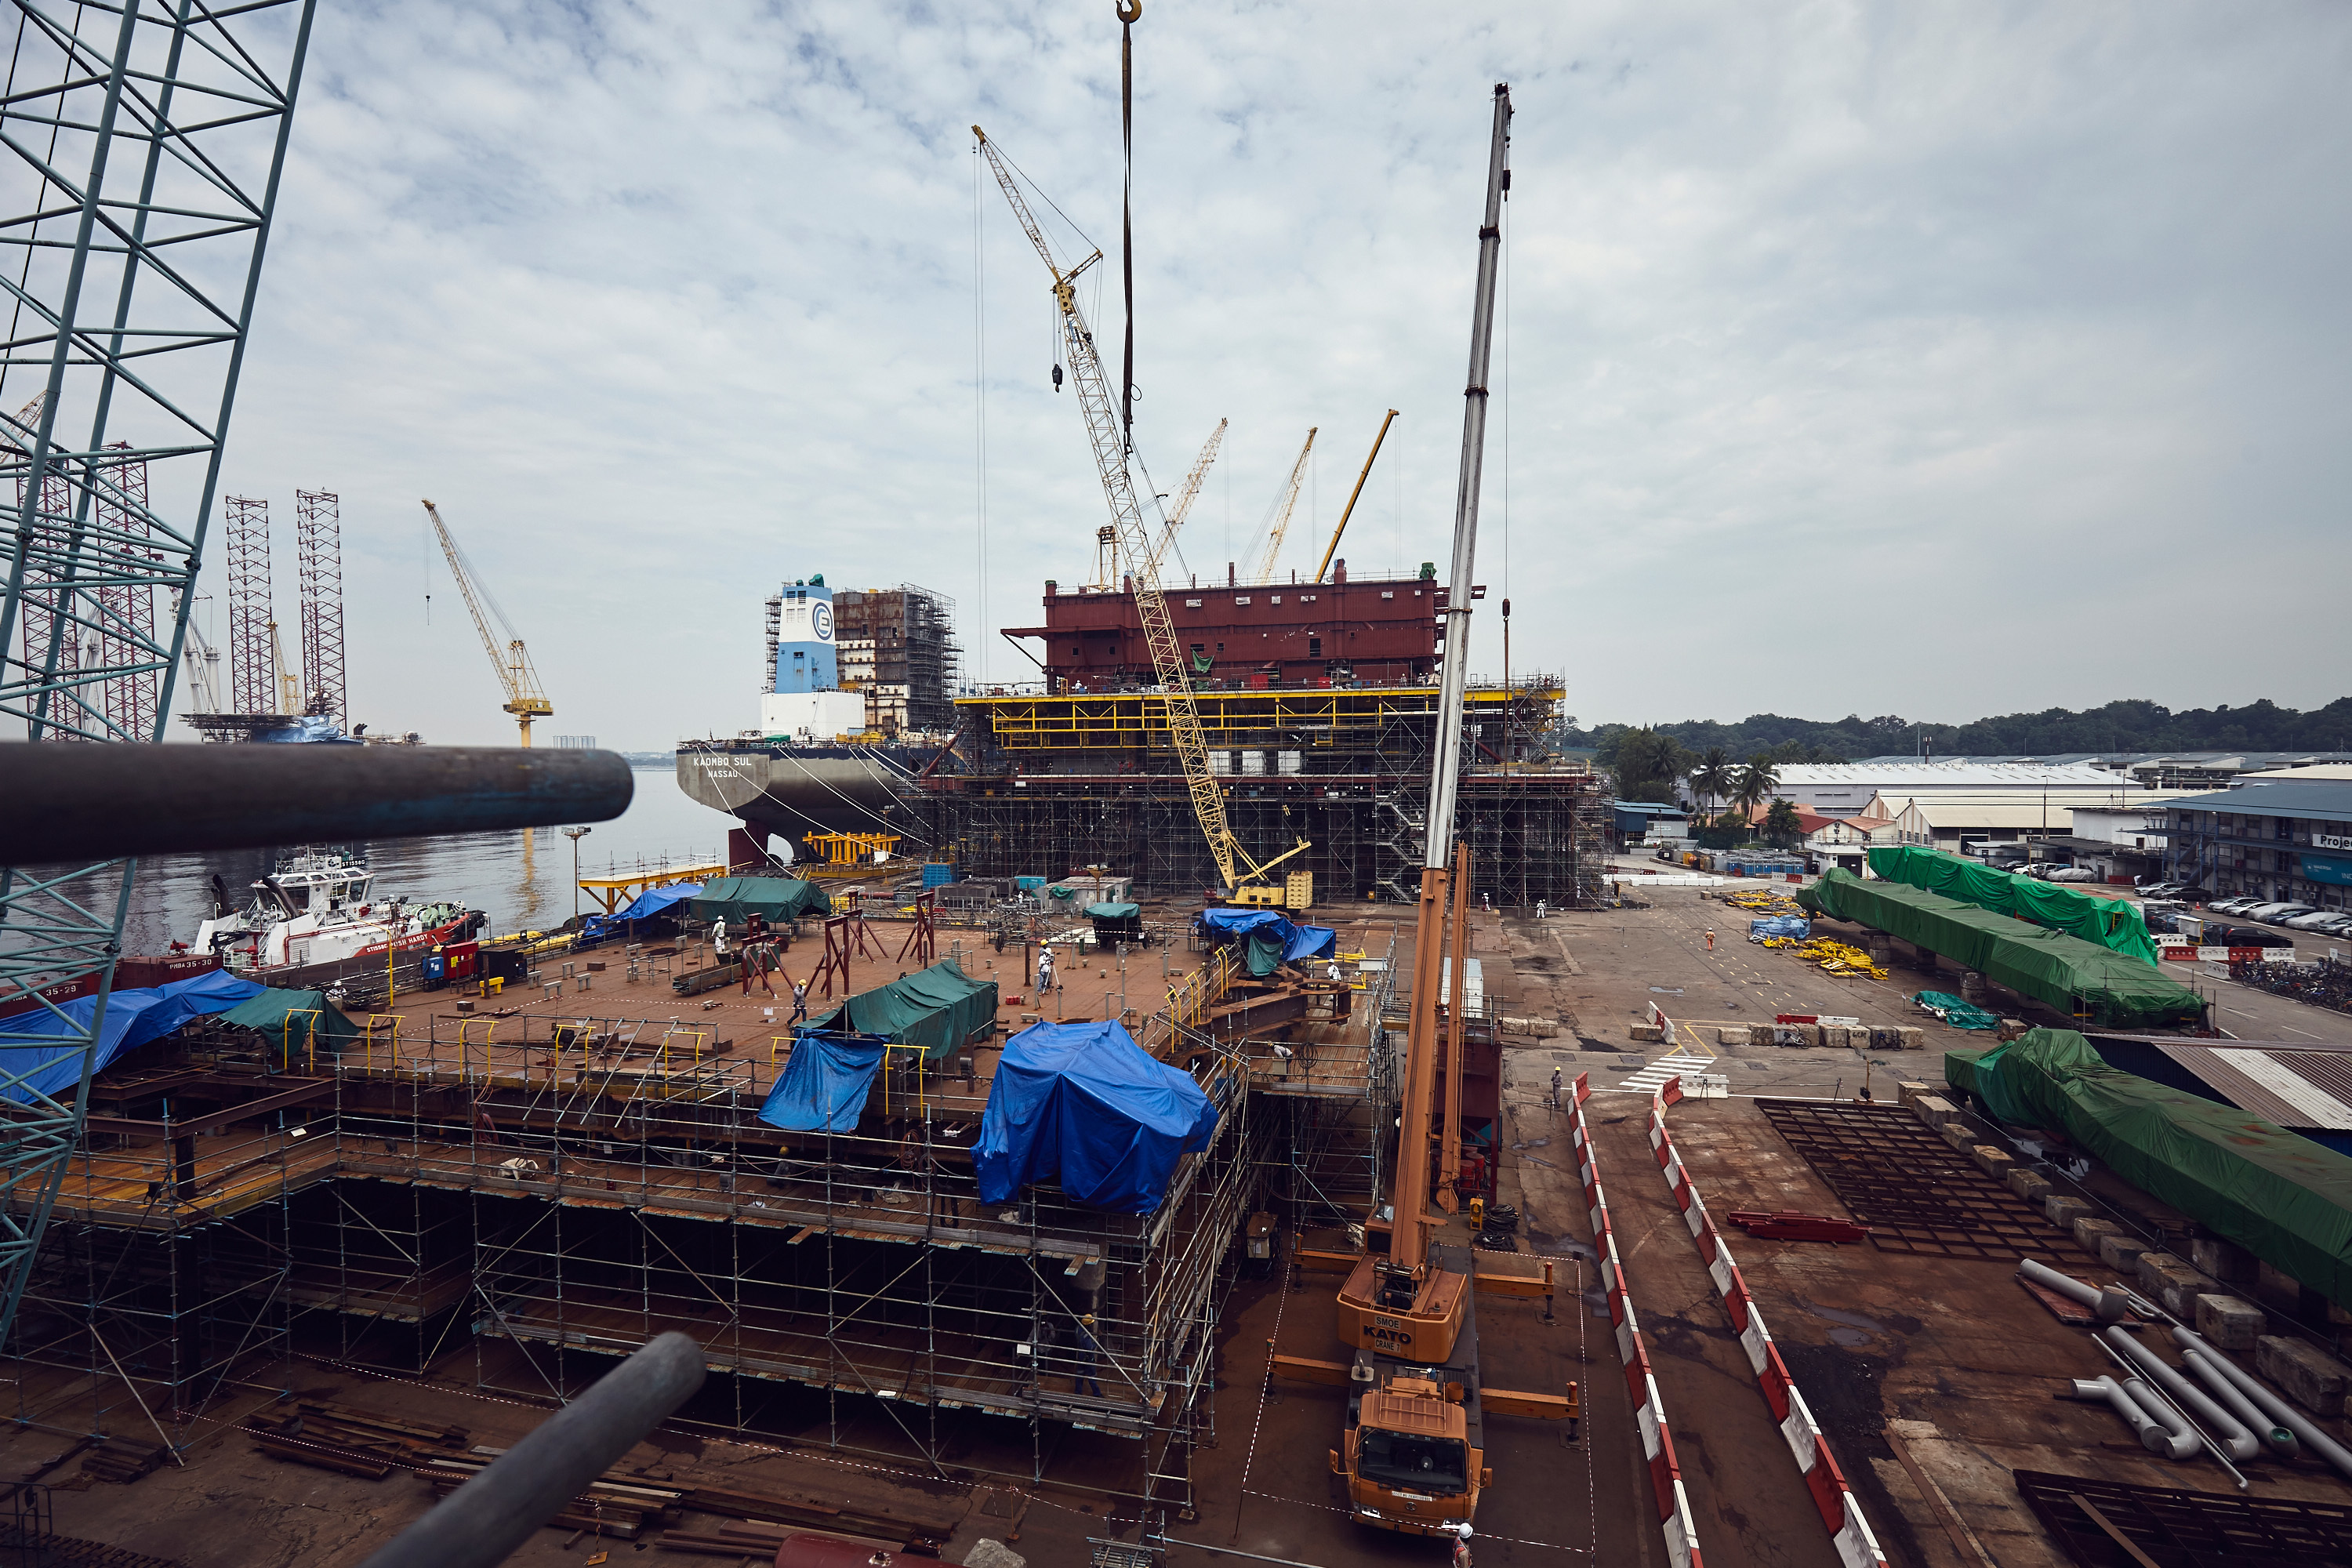 The Culzean utilities and living quarters topside, behind cranes, seen from one of the decks of the central processing facility in a yard in Singapore.